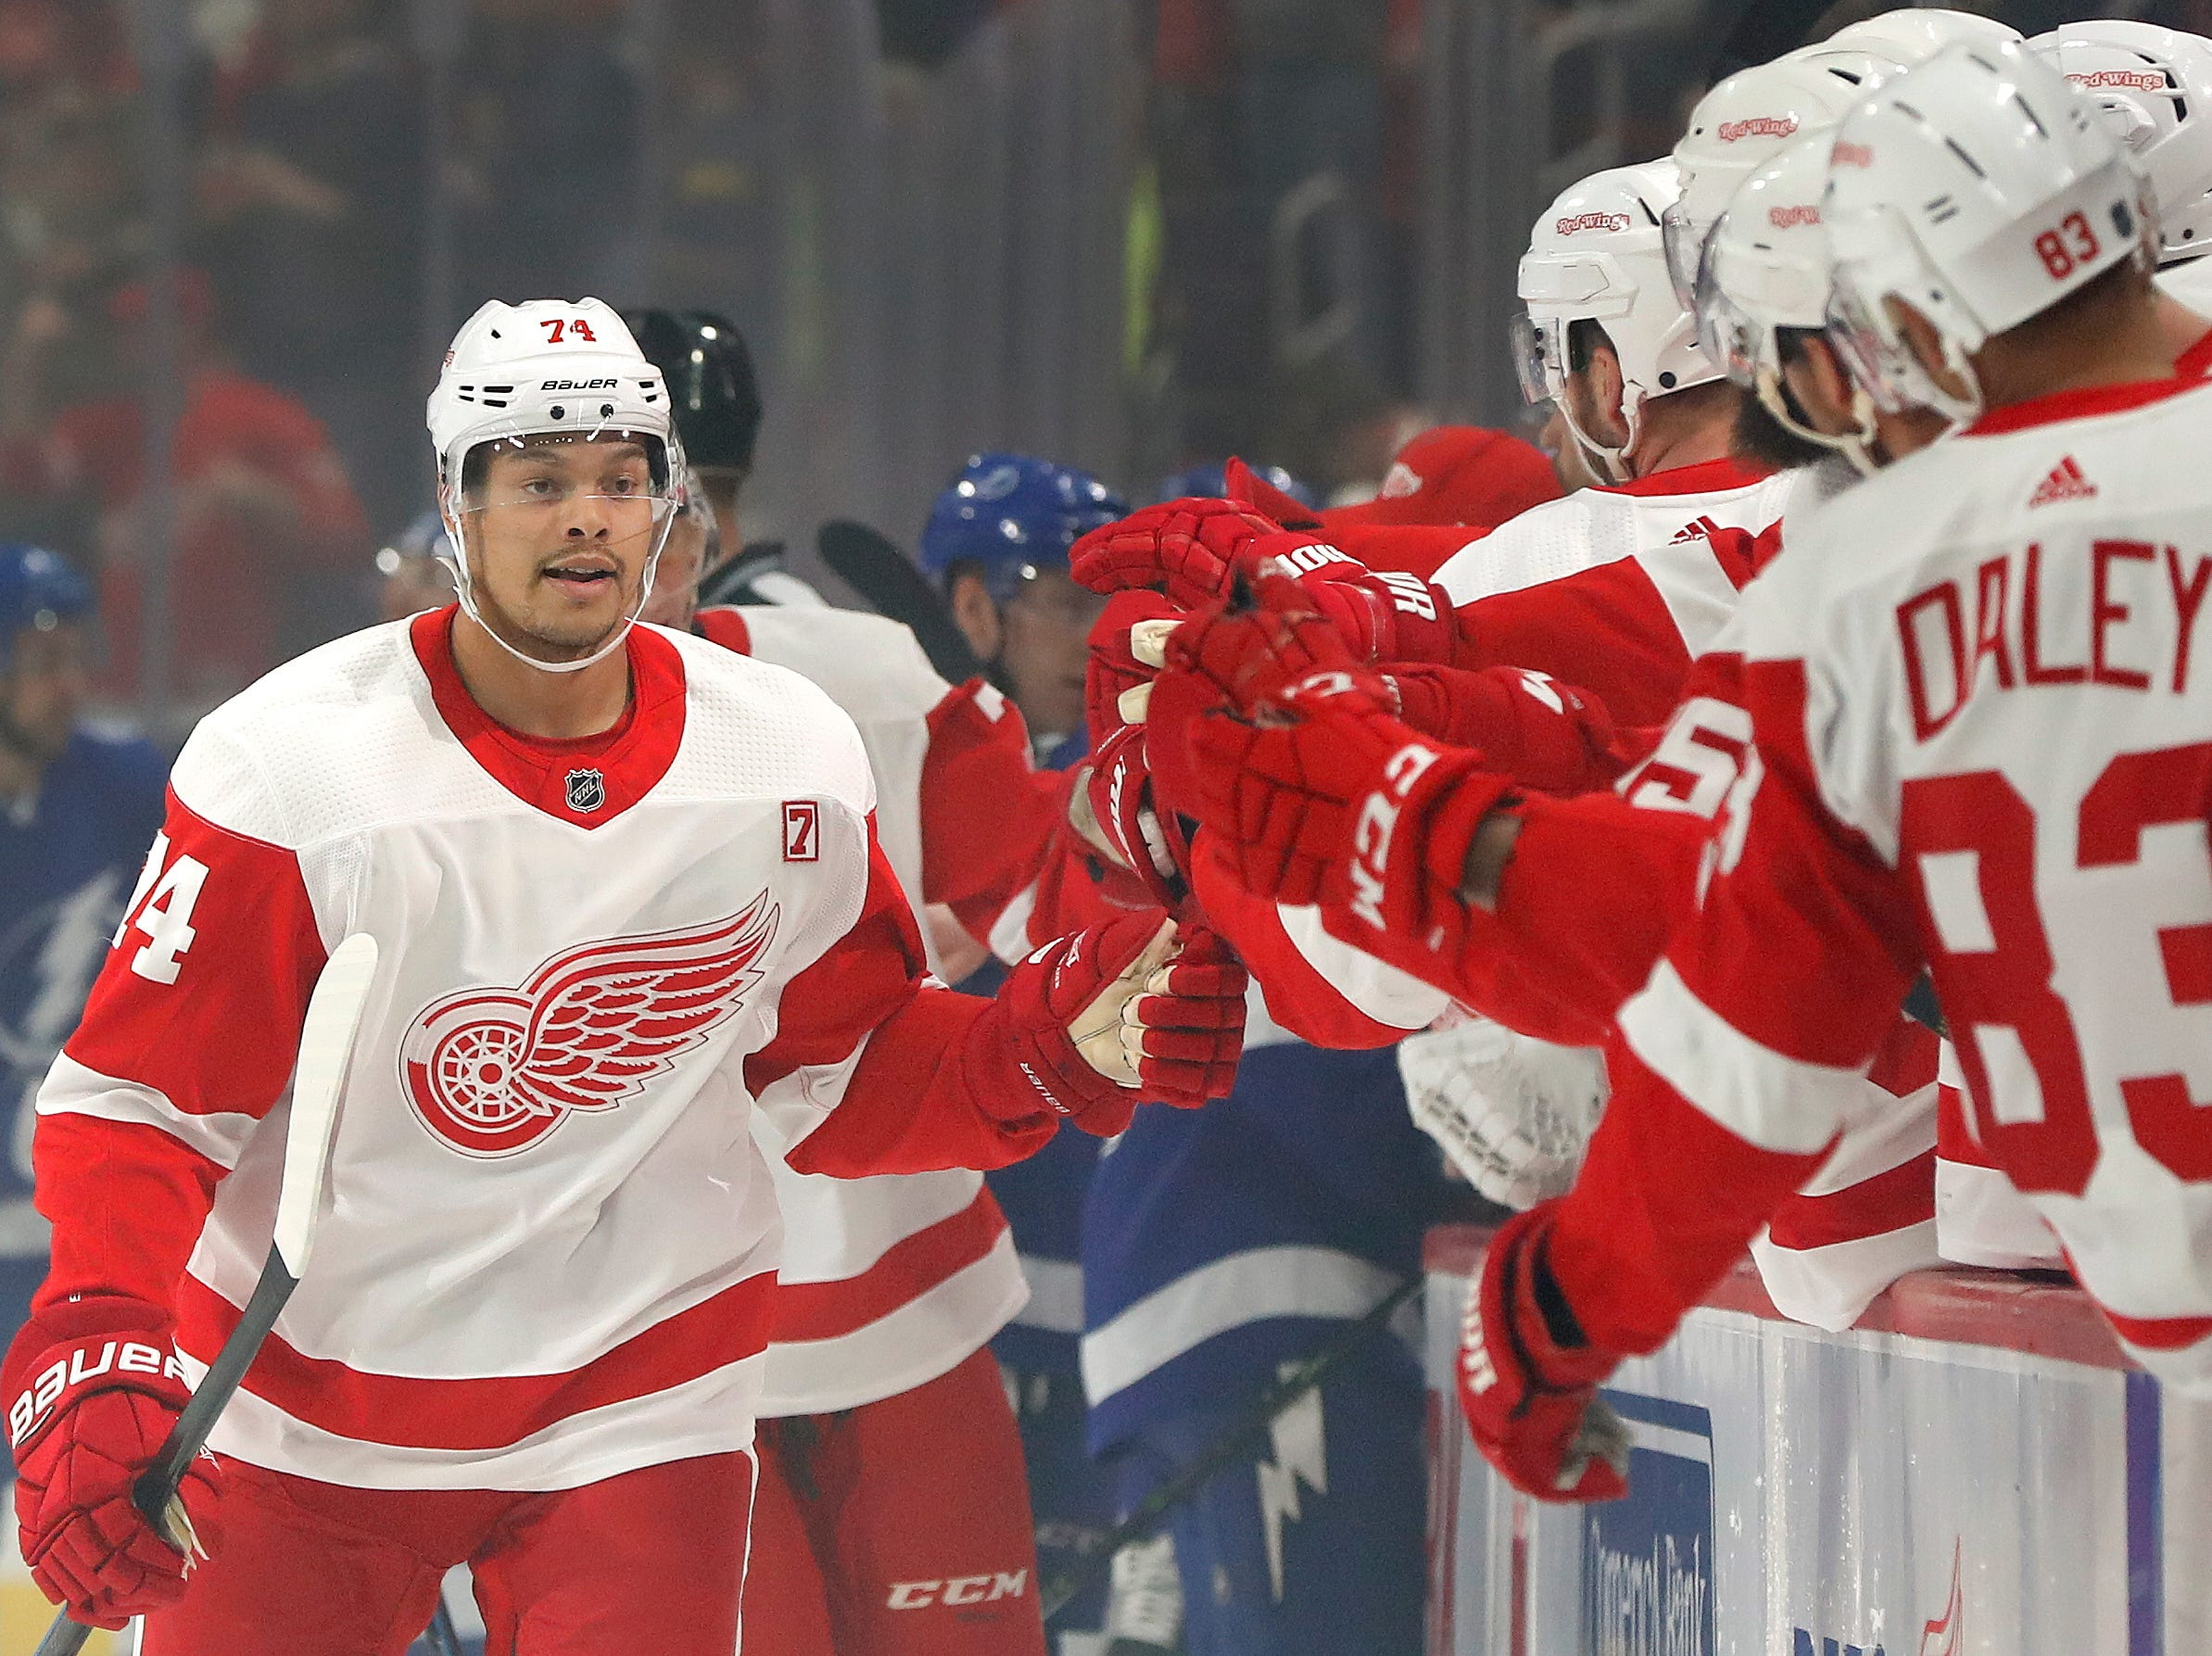 Detroit Red Wings defenseman Madison Bowey celebrates his goal against the Tampa Bay Lightning in the first period of an NHL hockey game against the Tampa Bay Lightning, Thursday, March 14, 2019, in Detroit.